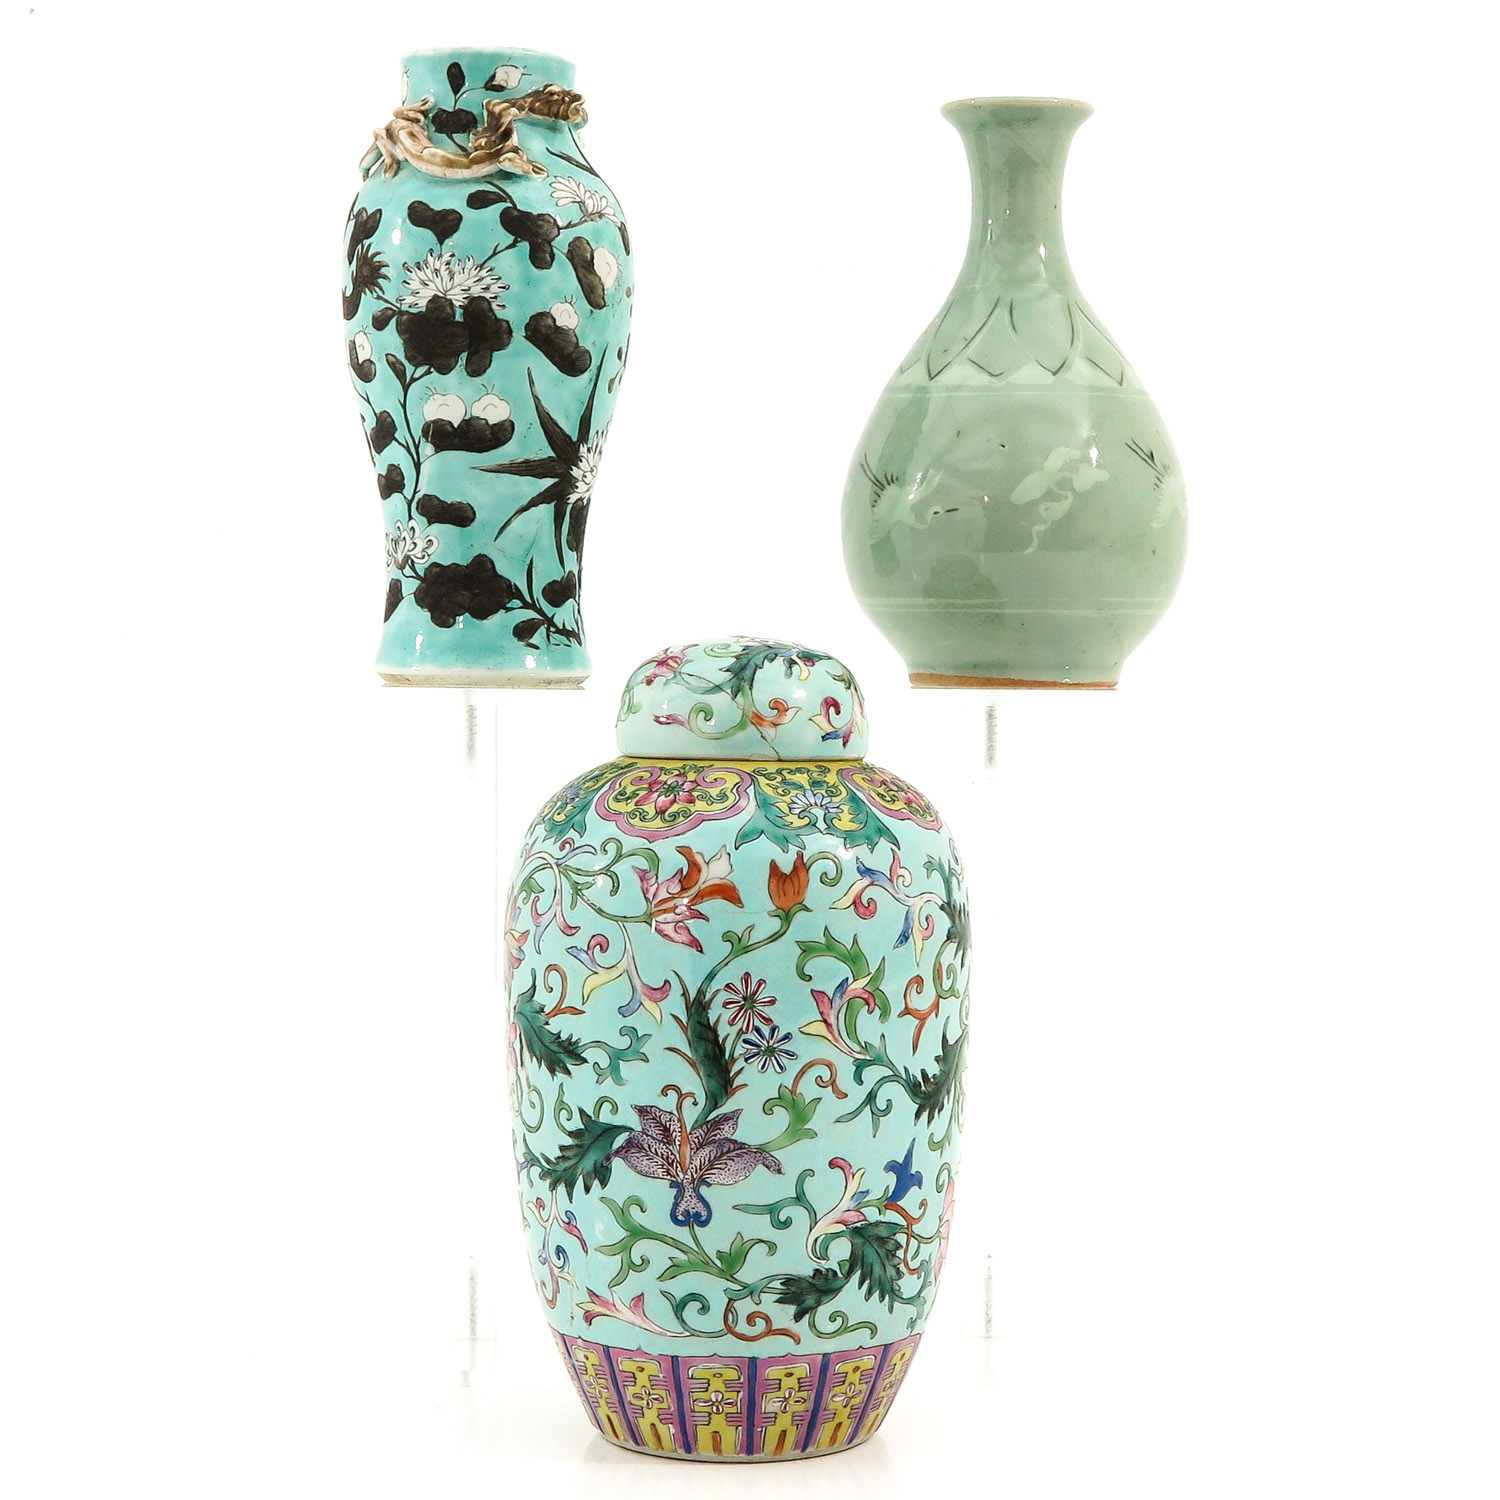 A Collection of 3 Vases - Image 3 of 9